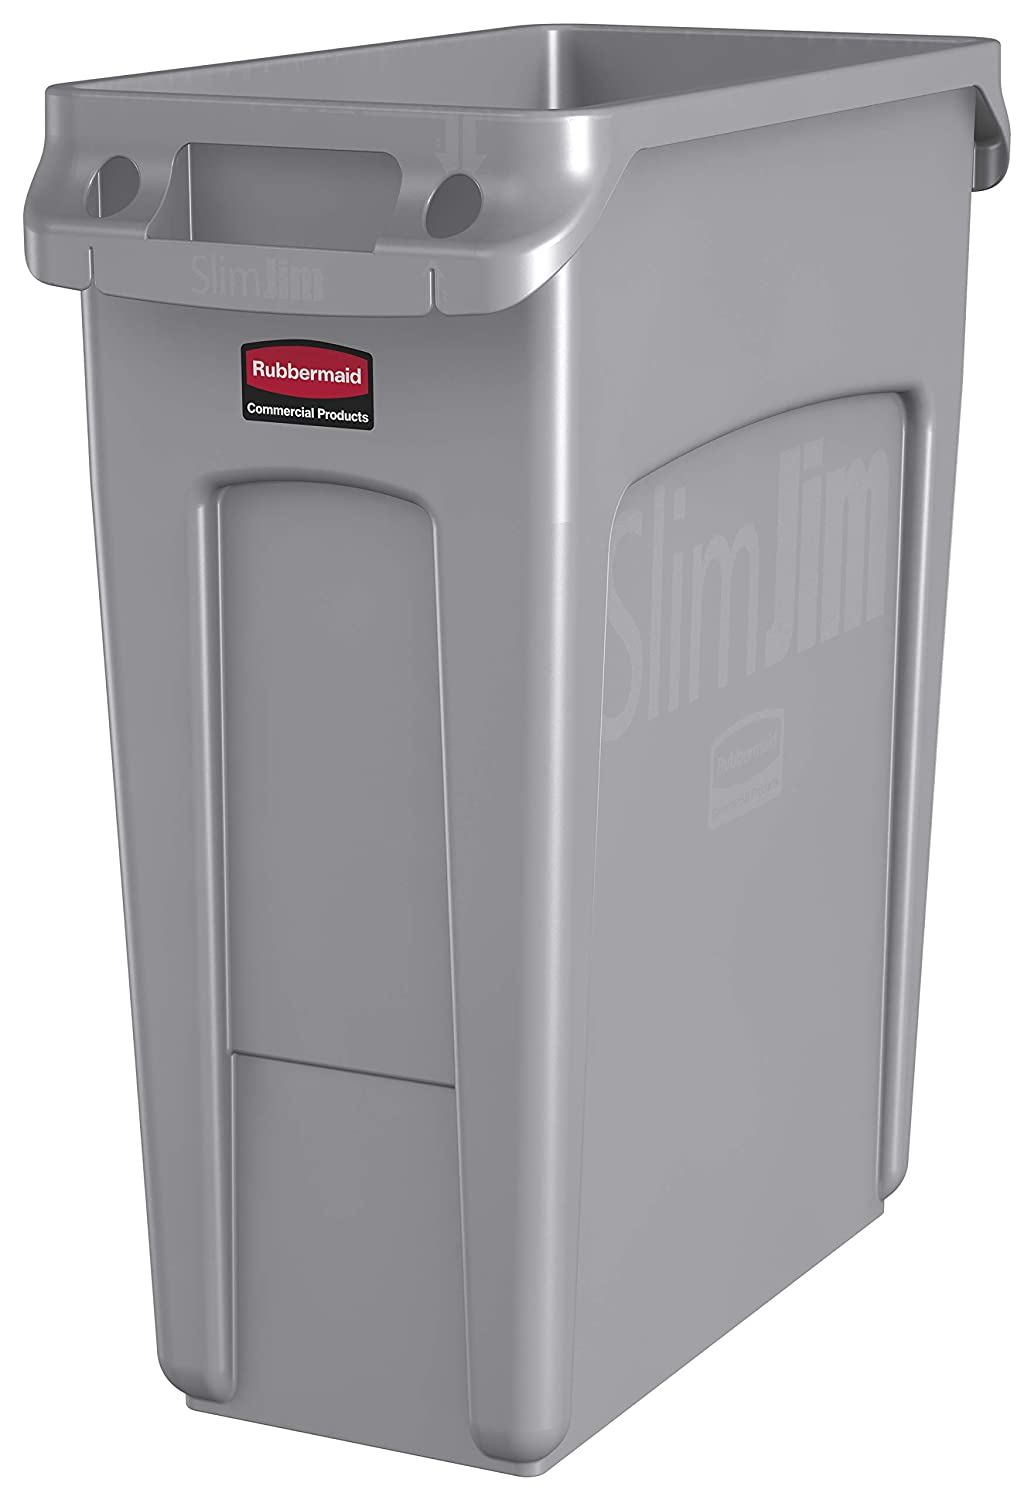 Rubbermaid Commercial Products Slim Jim Plastic Rectangular Trash/Garbage Can with Venting Channels, 16 Gallon, Gray (1971258)